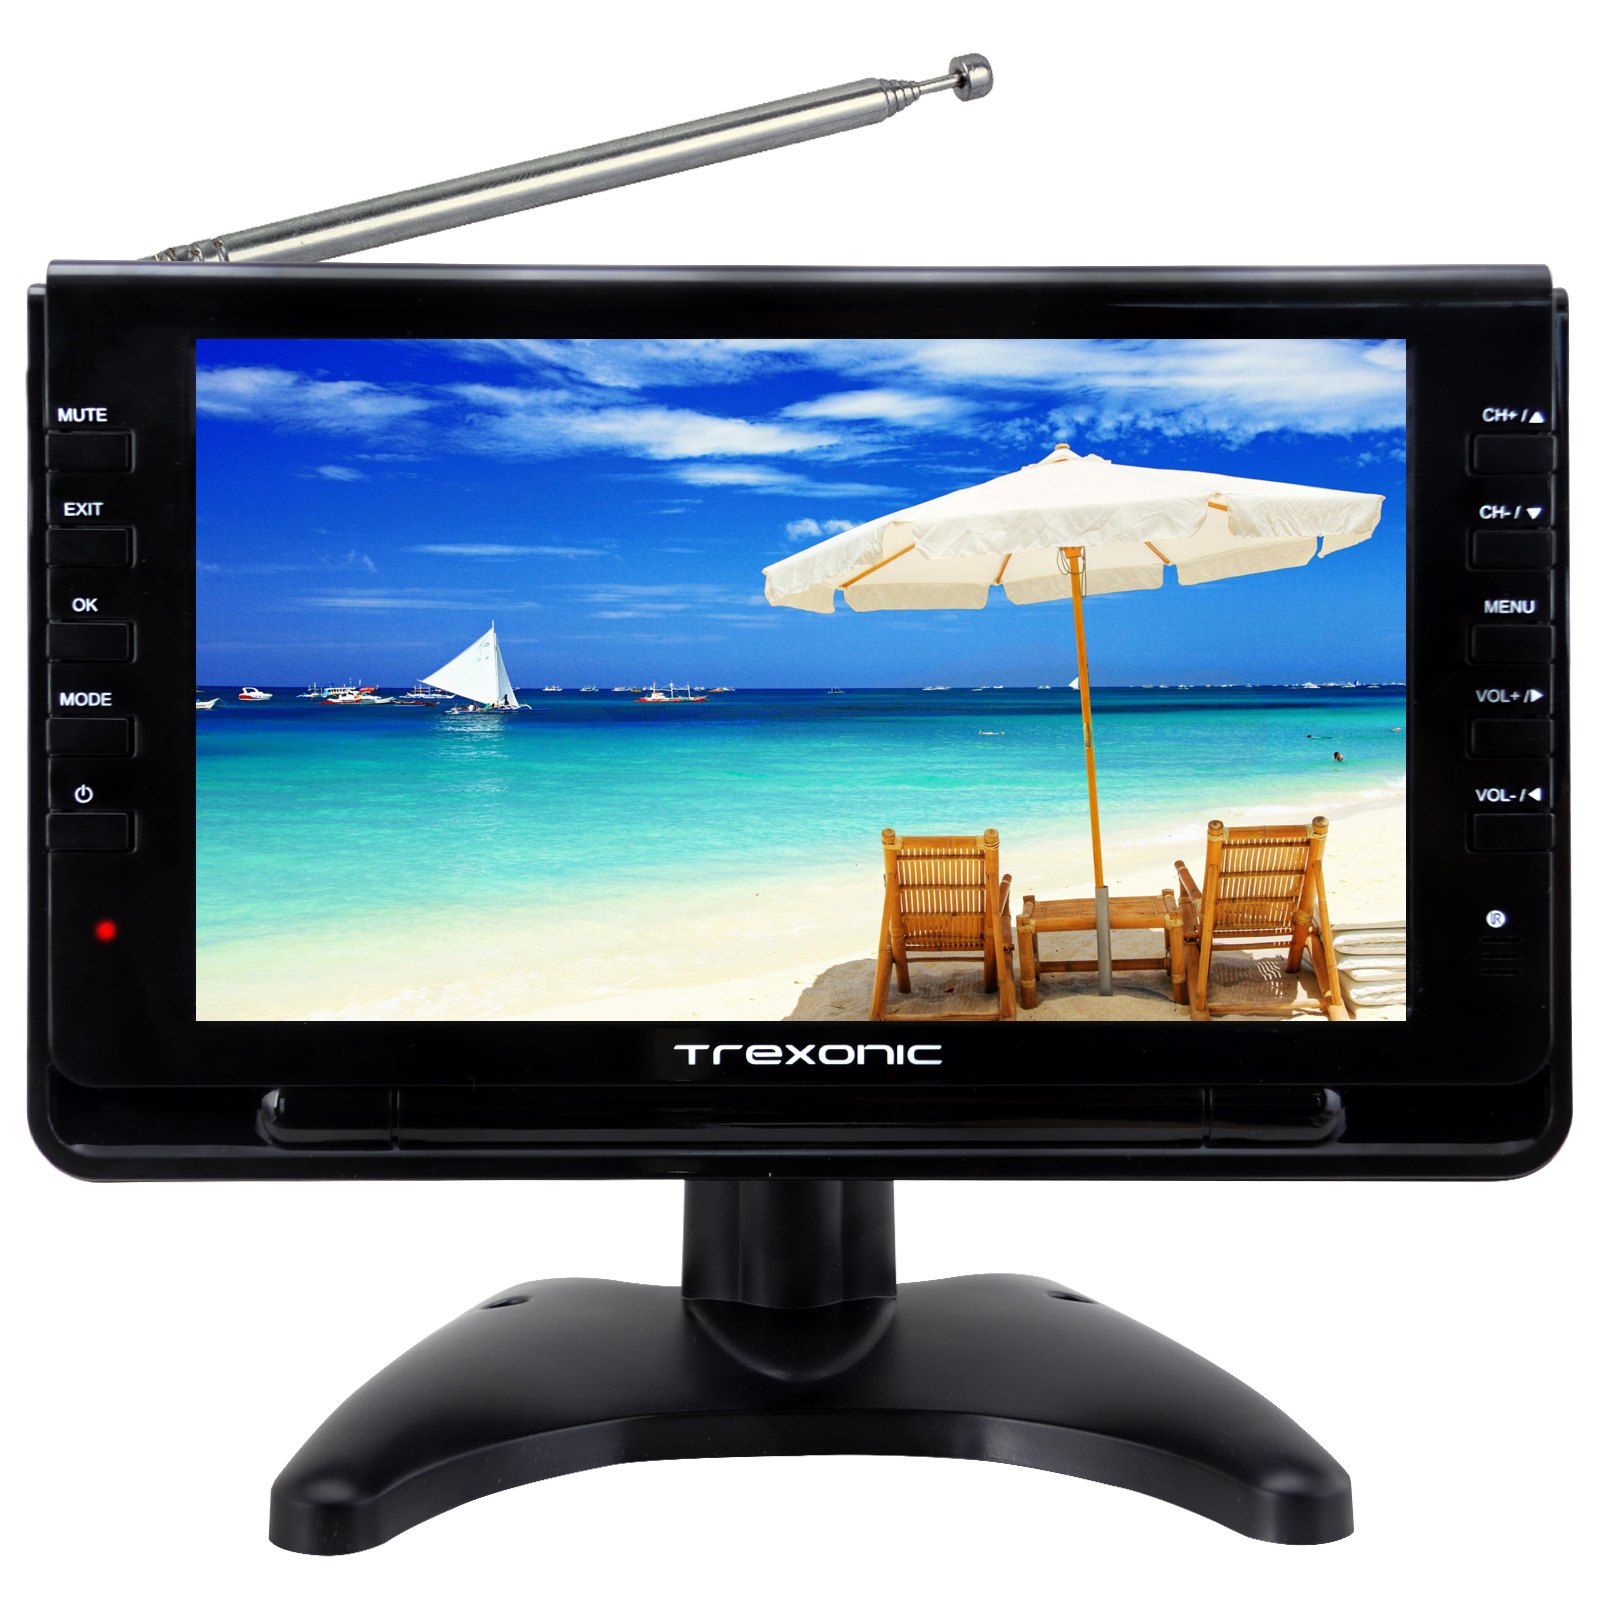 Trexonic Portable Ultra Lightweight Rechargeable Widescreen 9 Lcd Tv With Sd, Usb, Headphone Jack, Dual Av Inputs And Detachable Antenna